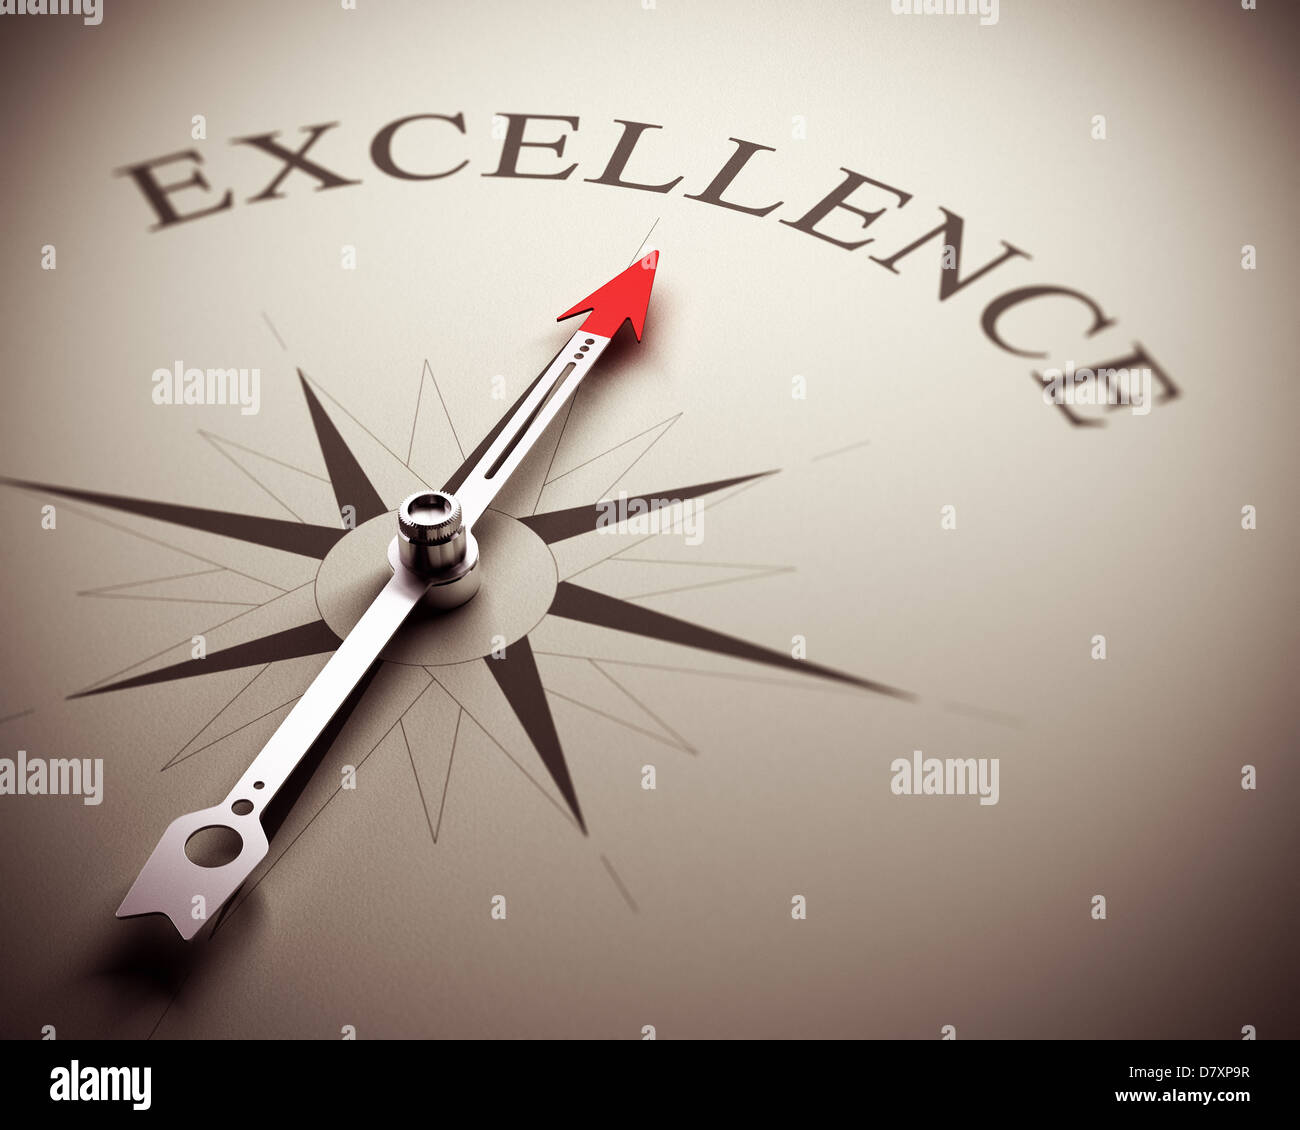 Compass needle pointing the word excellence, image suitable for business concept. 3D render illustration. - Stock Image